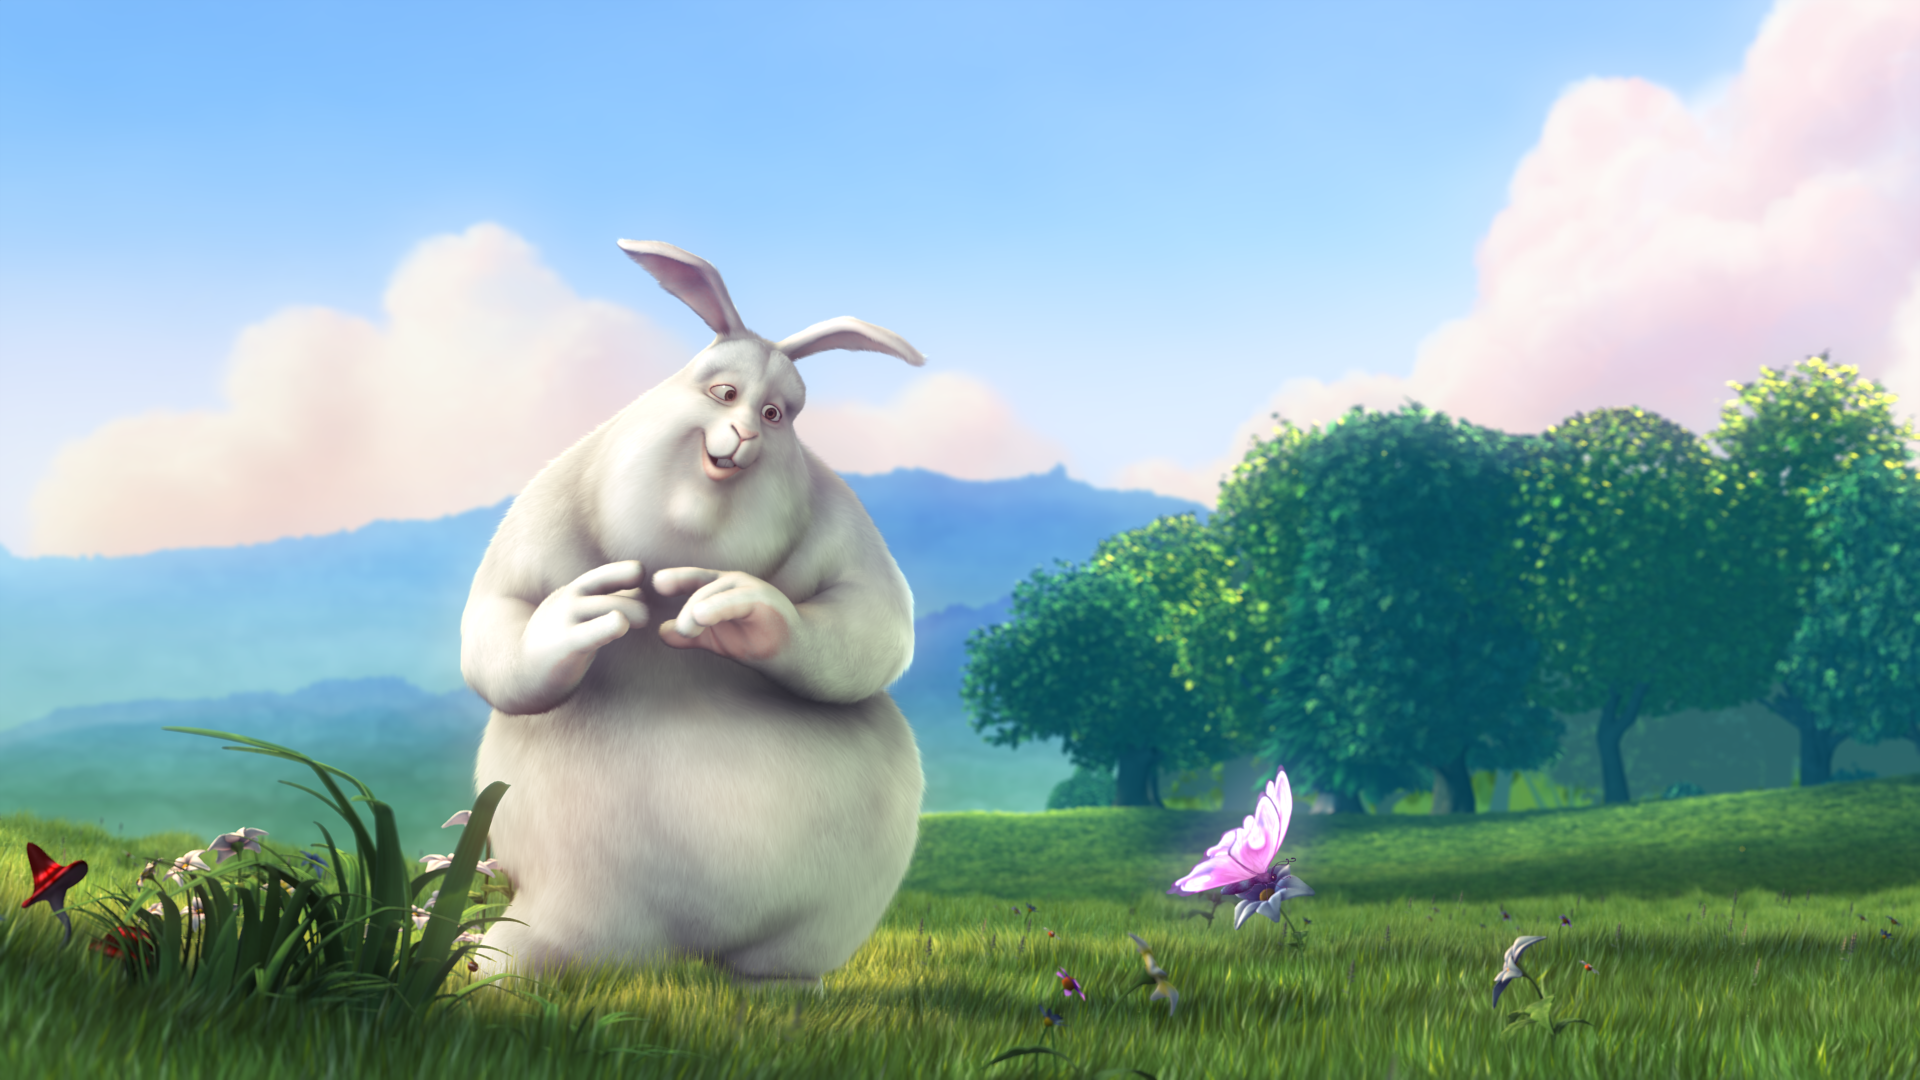 Big Buck Bunny Gallery